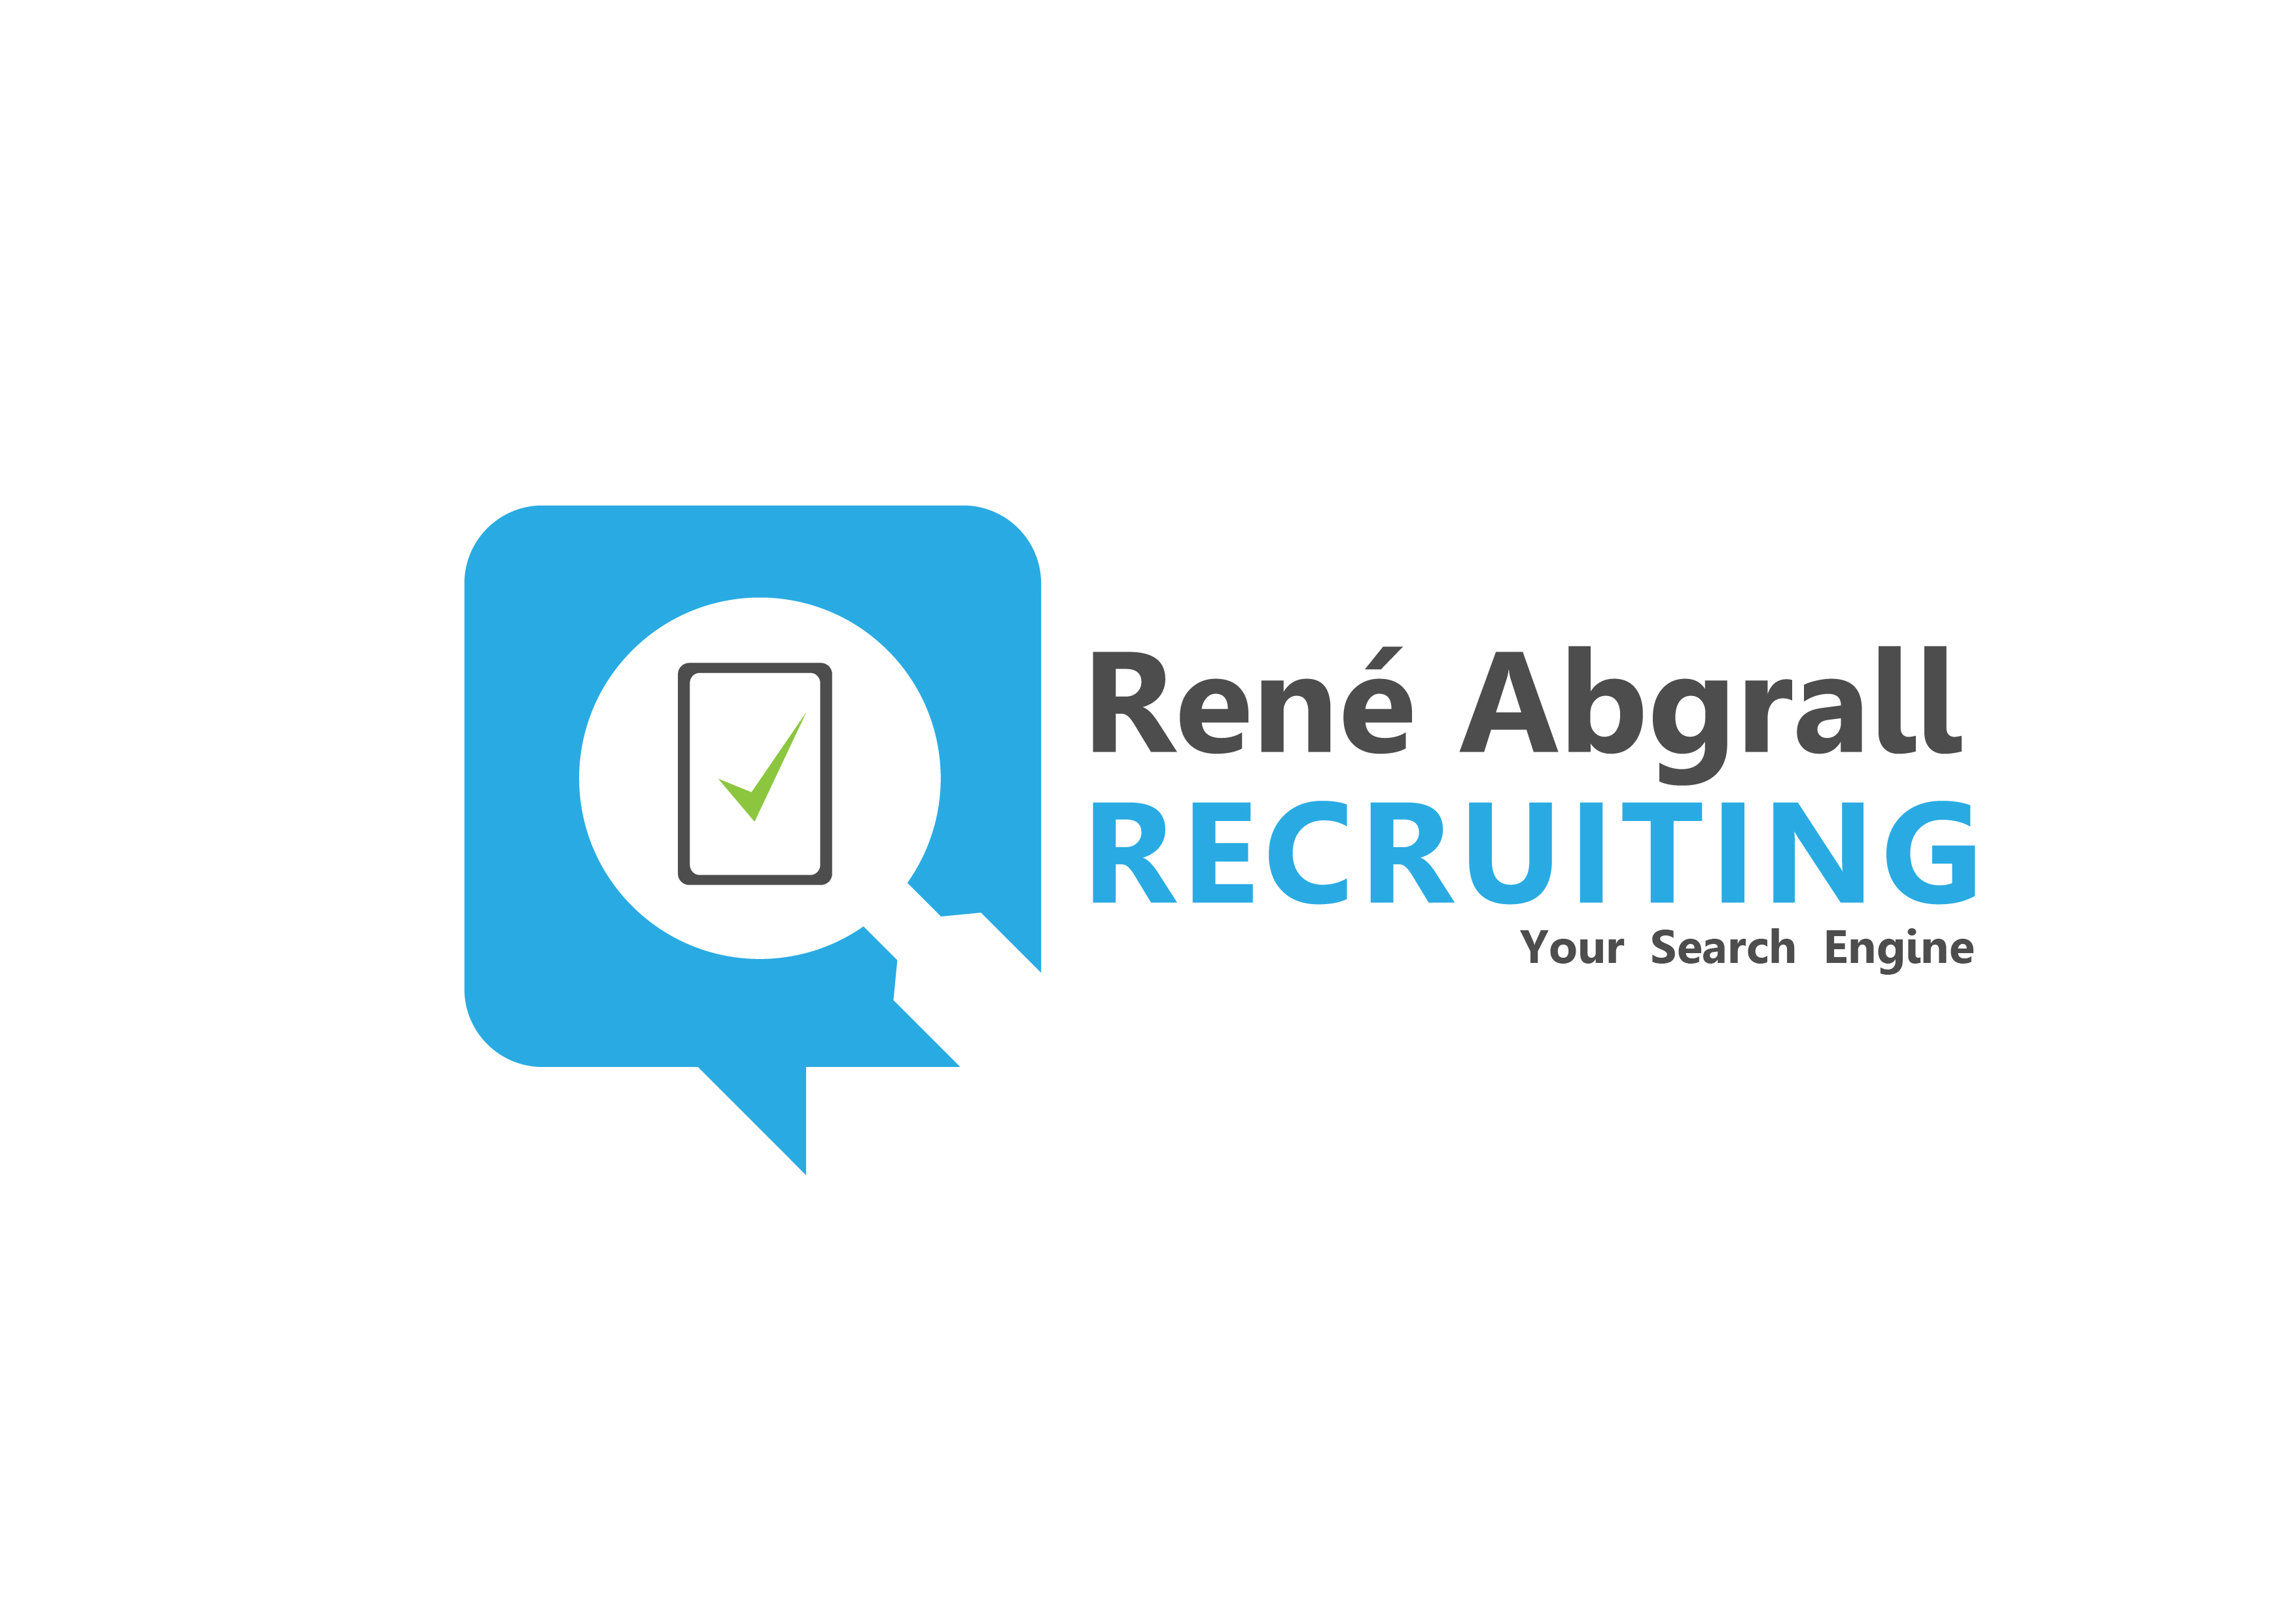 Logo Design by 3draw - Entry No. 18 in the Logo Design Contest Artistic Logo Design for René Abgrall Recruiting.